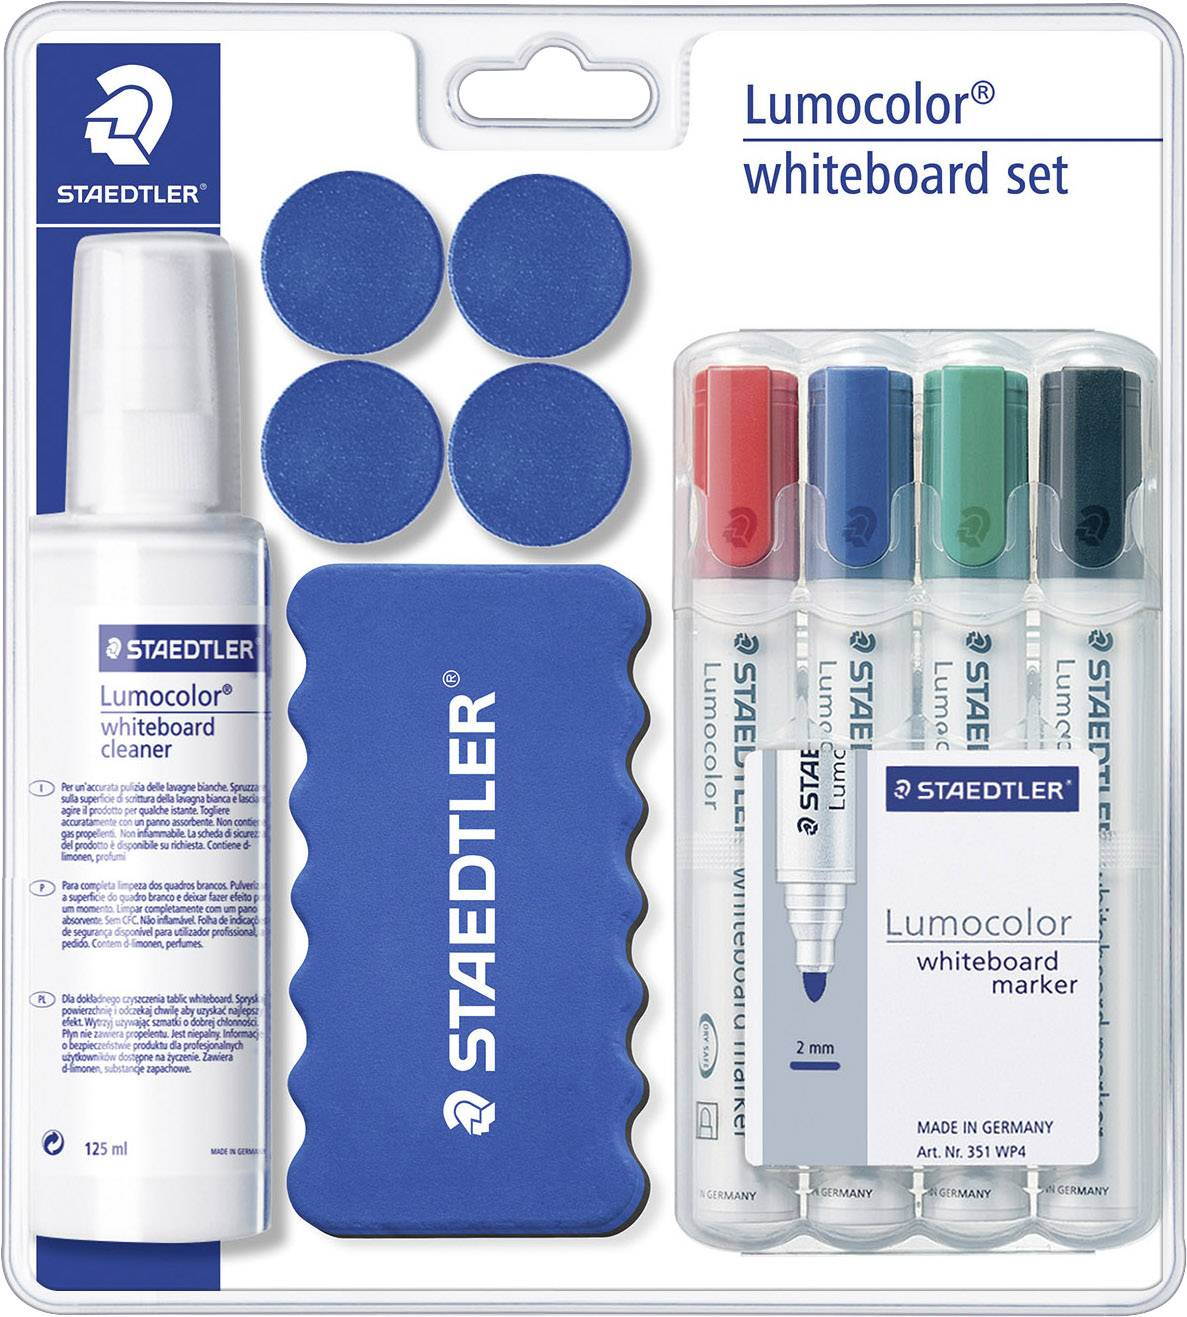 Whiteboard Wischer Staedtler Whiteboardmarker Lumocolor Whiteboard Set 613 S